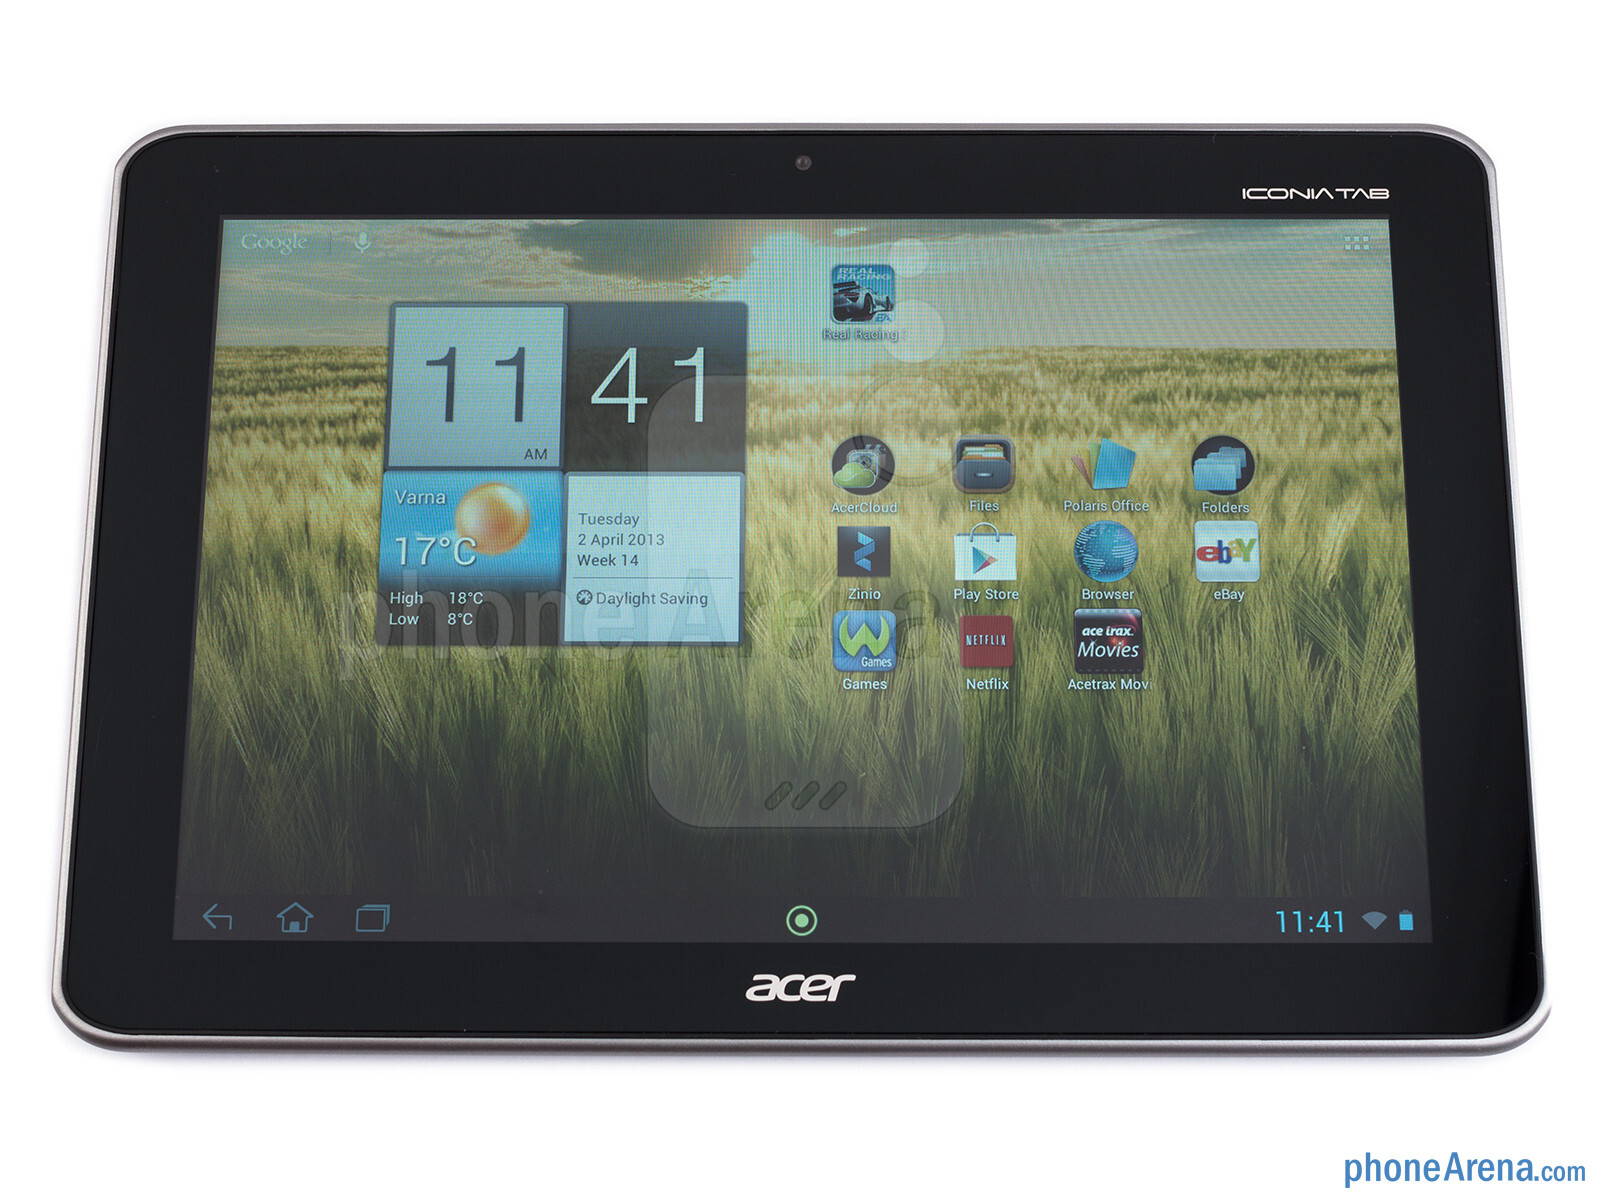 acer tablet iconia tab images galleries with a bite. Black Bedroom Furniture Sets. Home Design Ideas